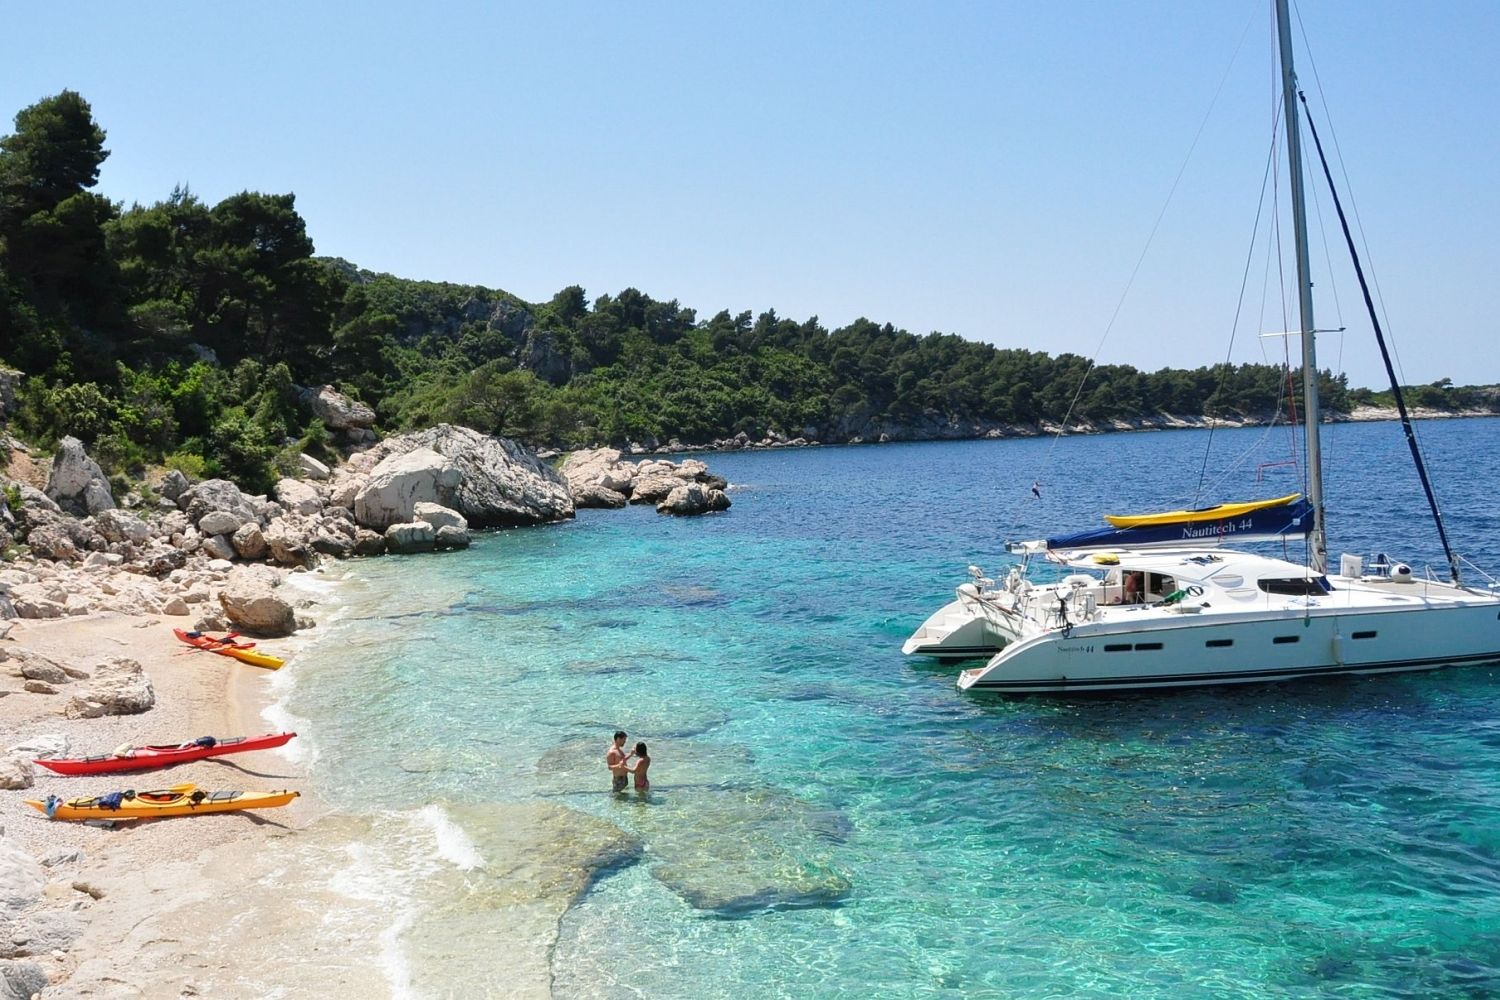 Adventure Sailing Trip Dubrovnik Croatia, sea kayaking & swimming